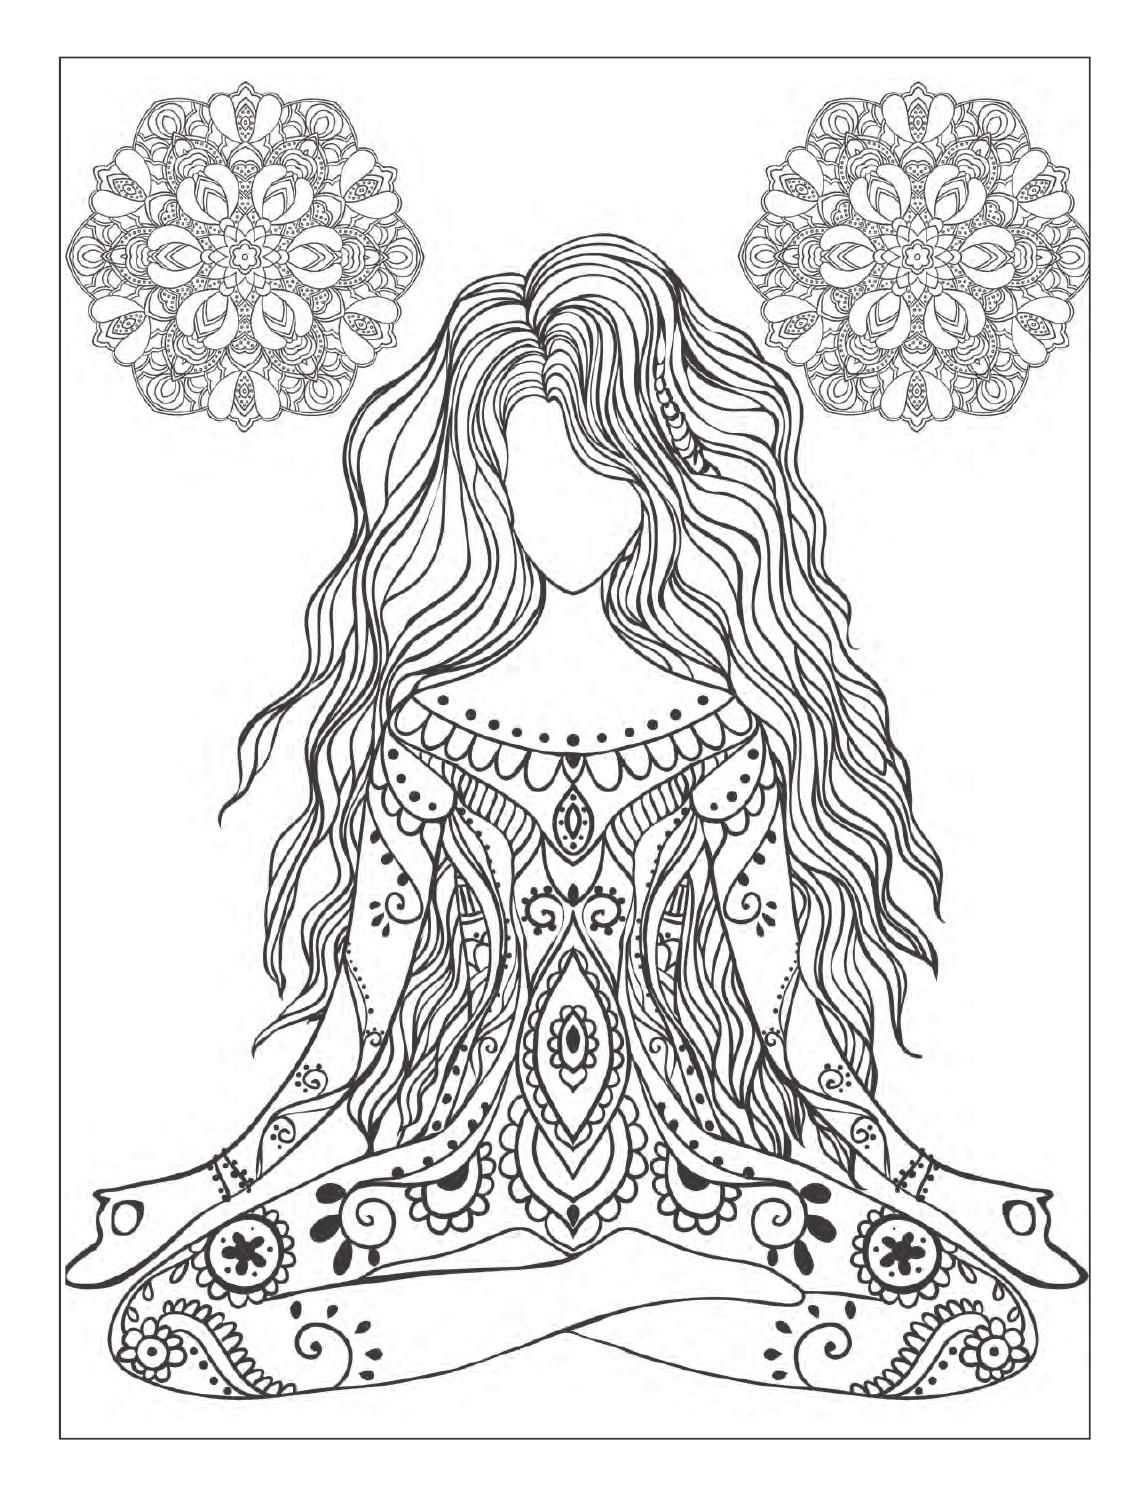 free mindfulness coloring pages - photo#9